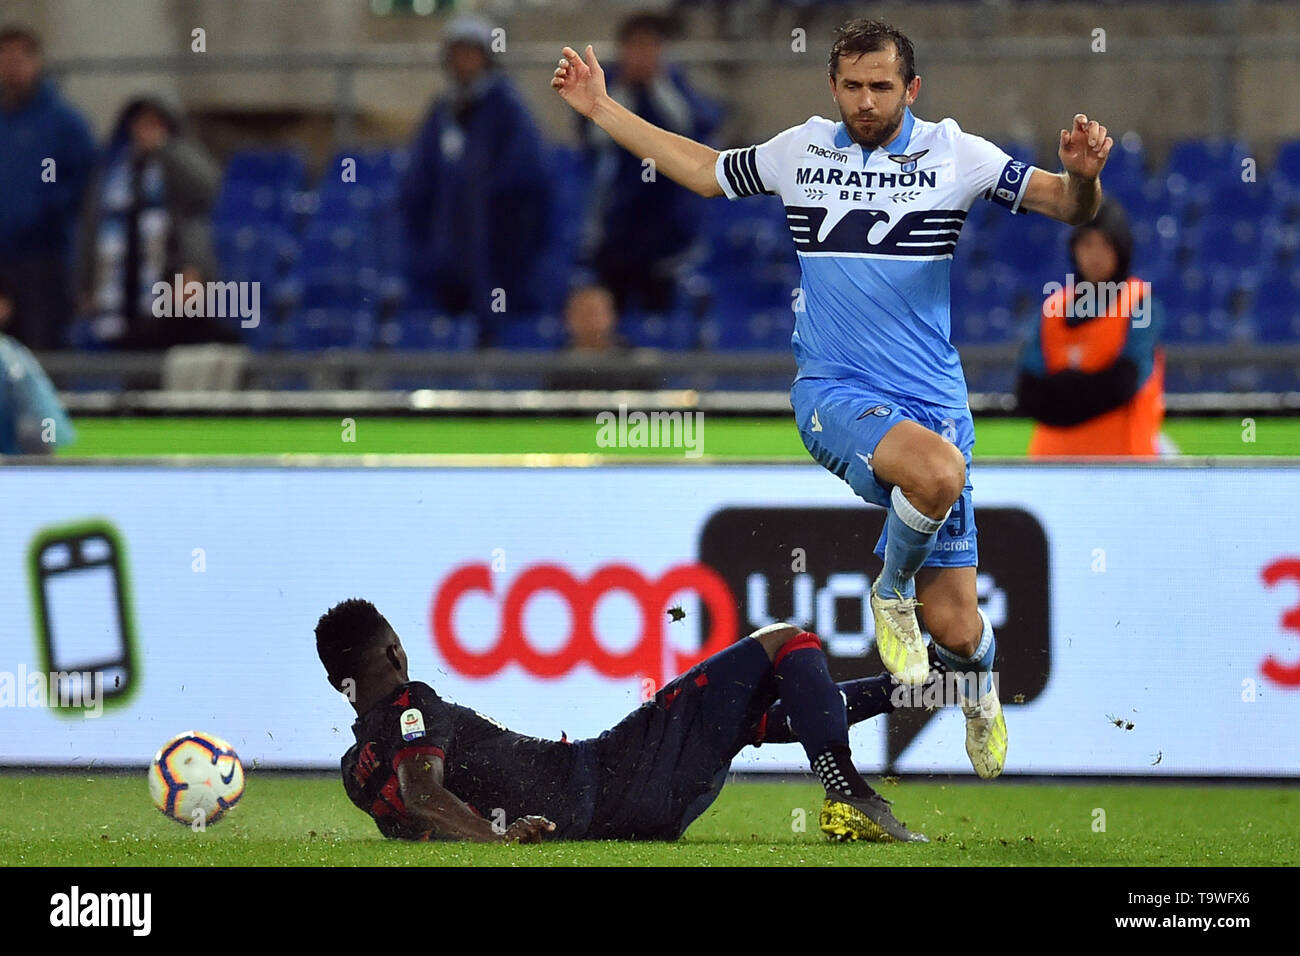 Rome, Italy. 21st May, 2019. Serie A Lazio vs Bologna Stadio Olimpico.Roma 20-05-2019 Pictured Ibrahima Mbaye and Senad Lulic Foto Fotografo01 Credit: Independent Photo Agency/Alamy Live News - Stock Image